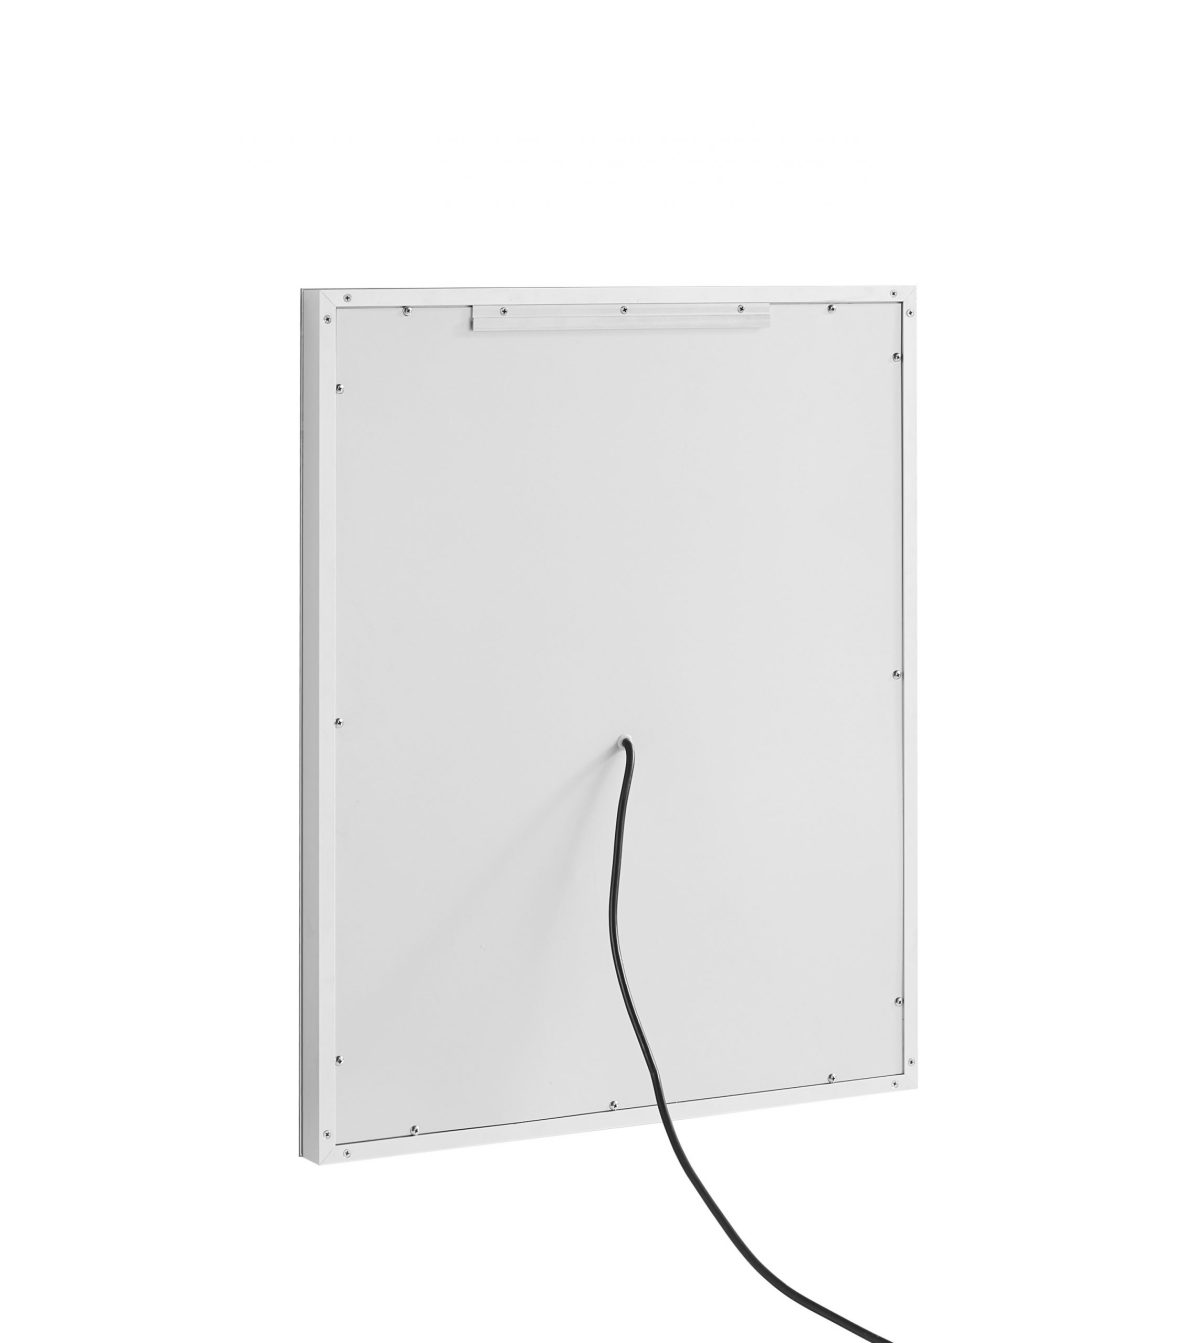 AQUADOM Daytona 24 inches x 36 inches Wall Mounted LED Lighted Silver Mirror for Bathroom